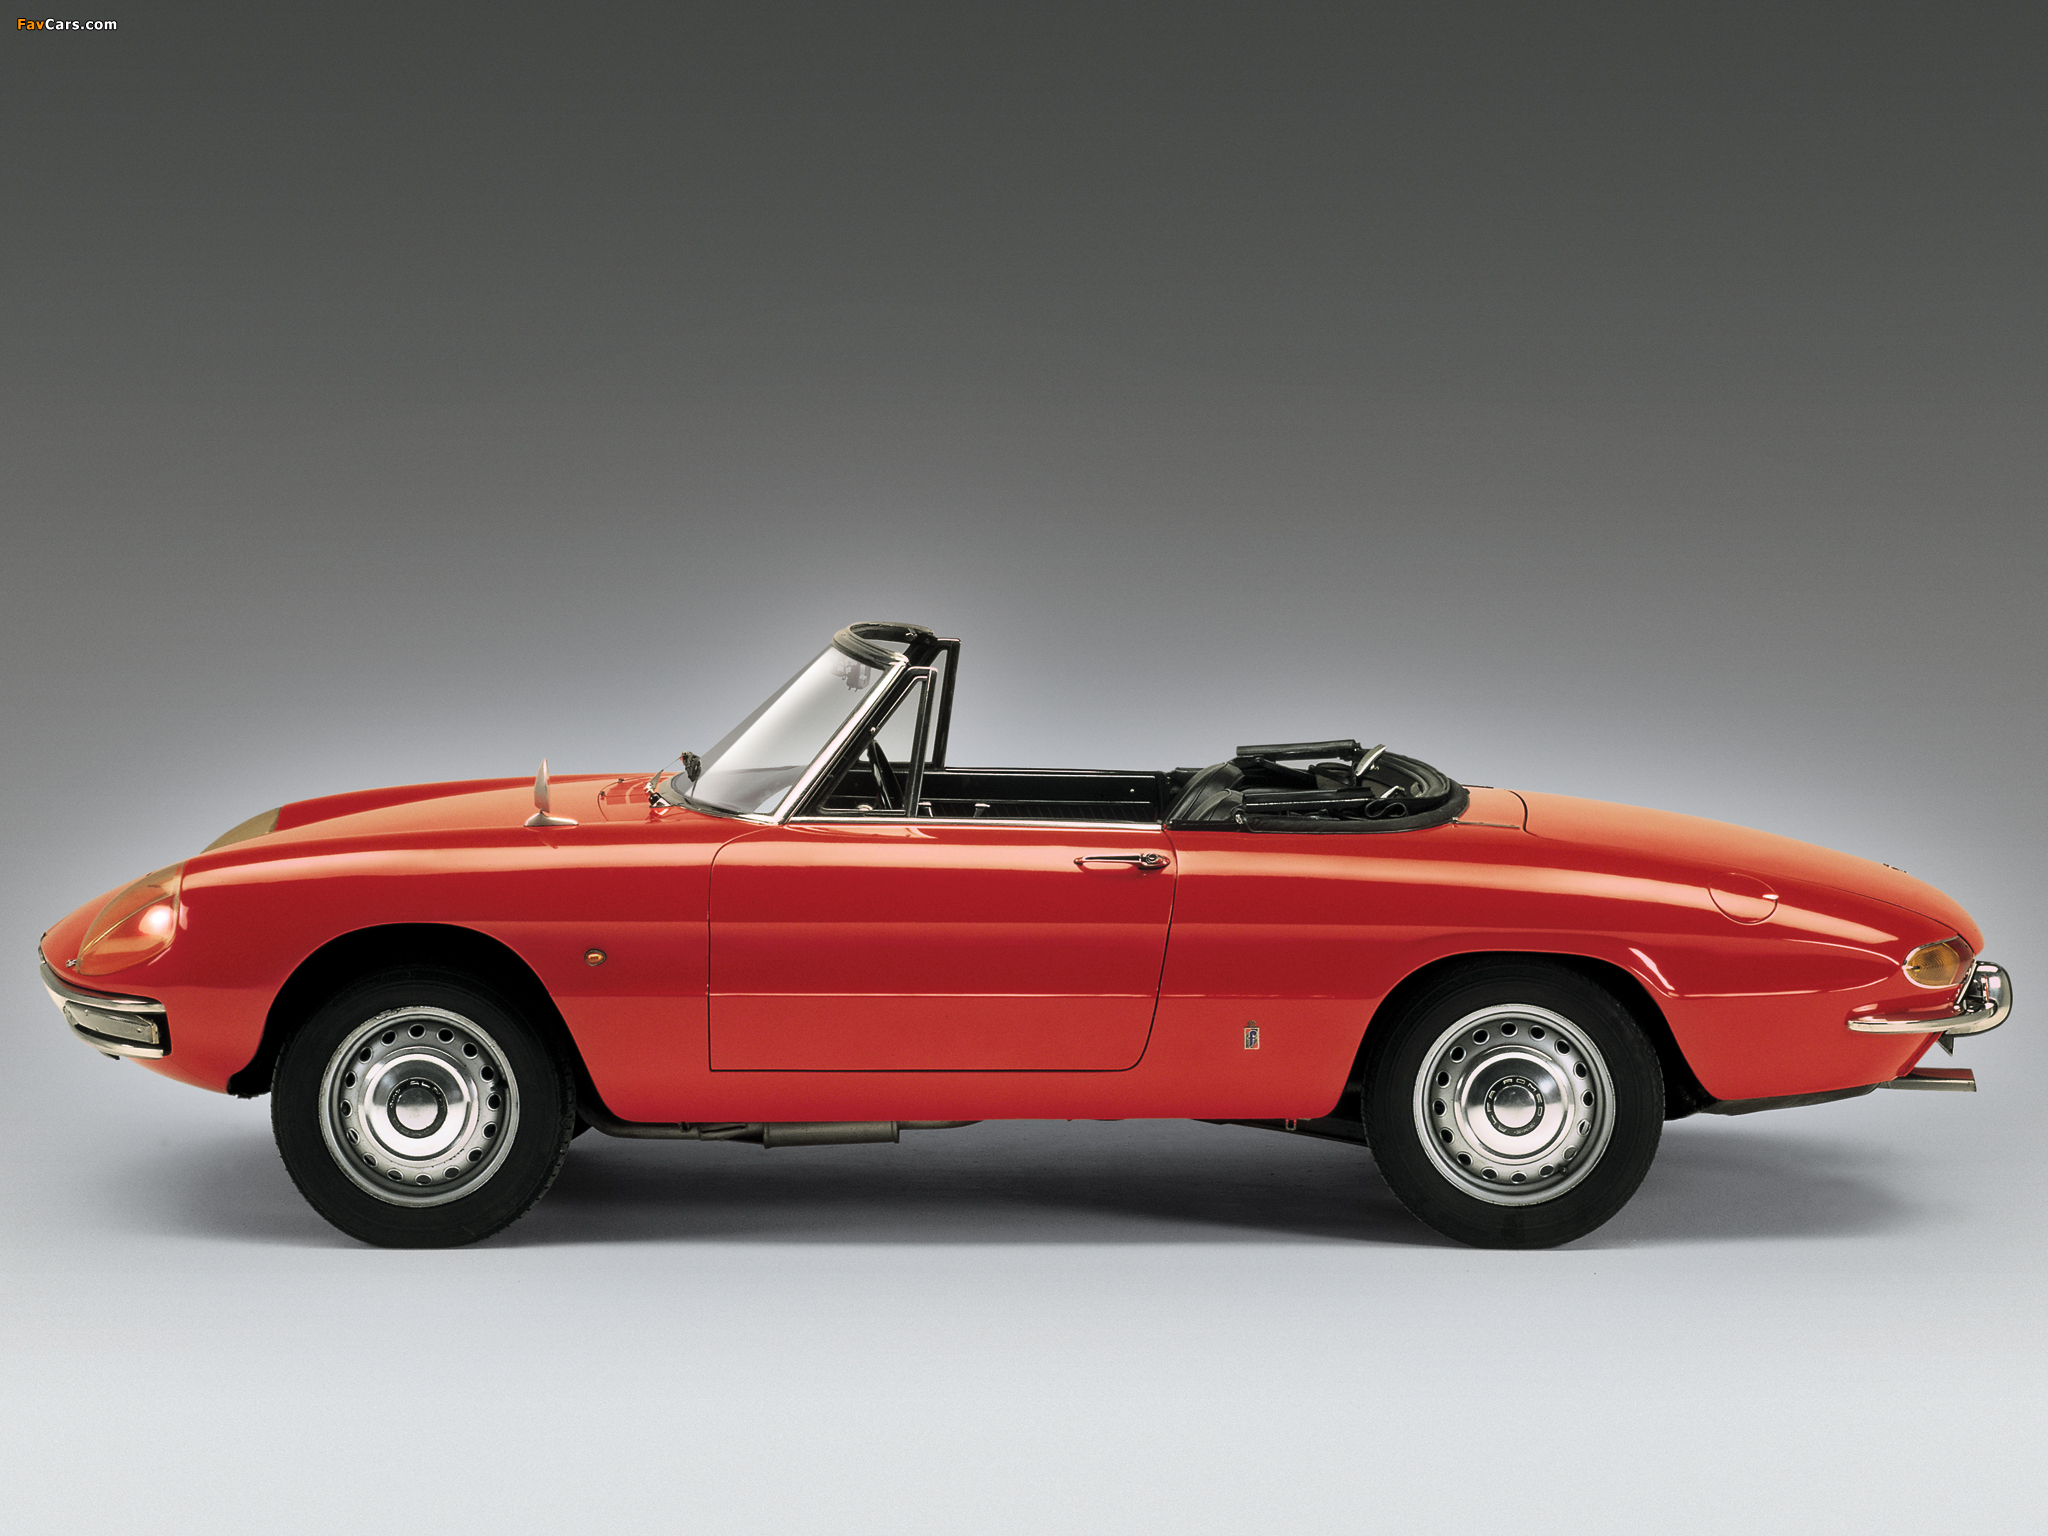 alfa romeo spider images start 250 WeiLi Automotive Network